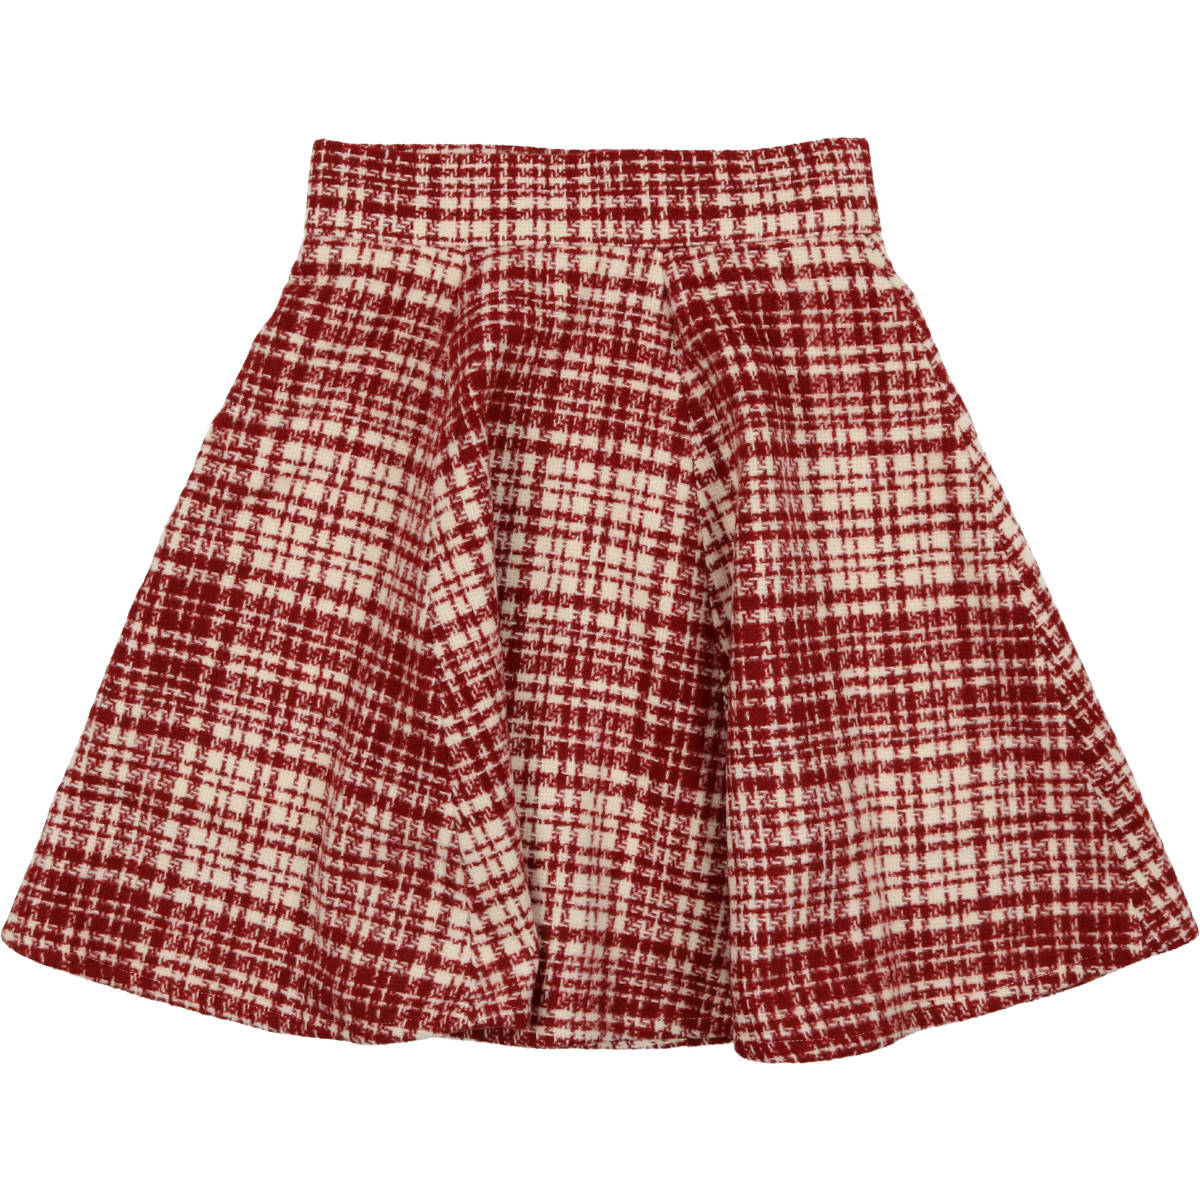 Delicat Red Plaid Circle Skirt